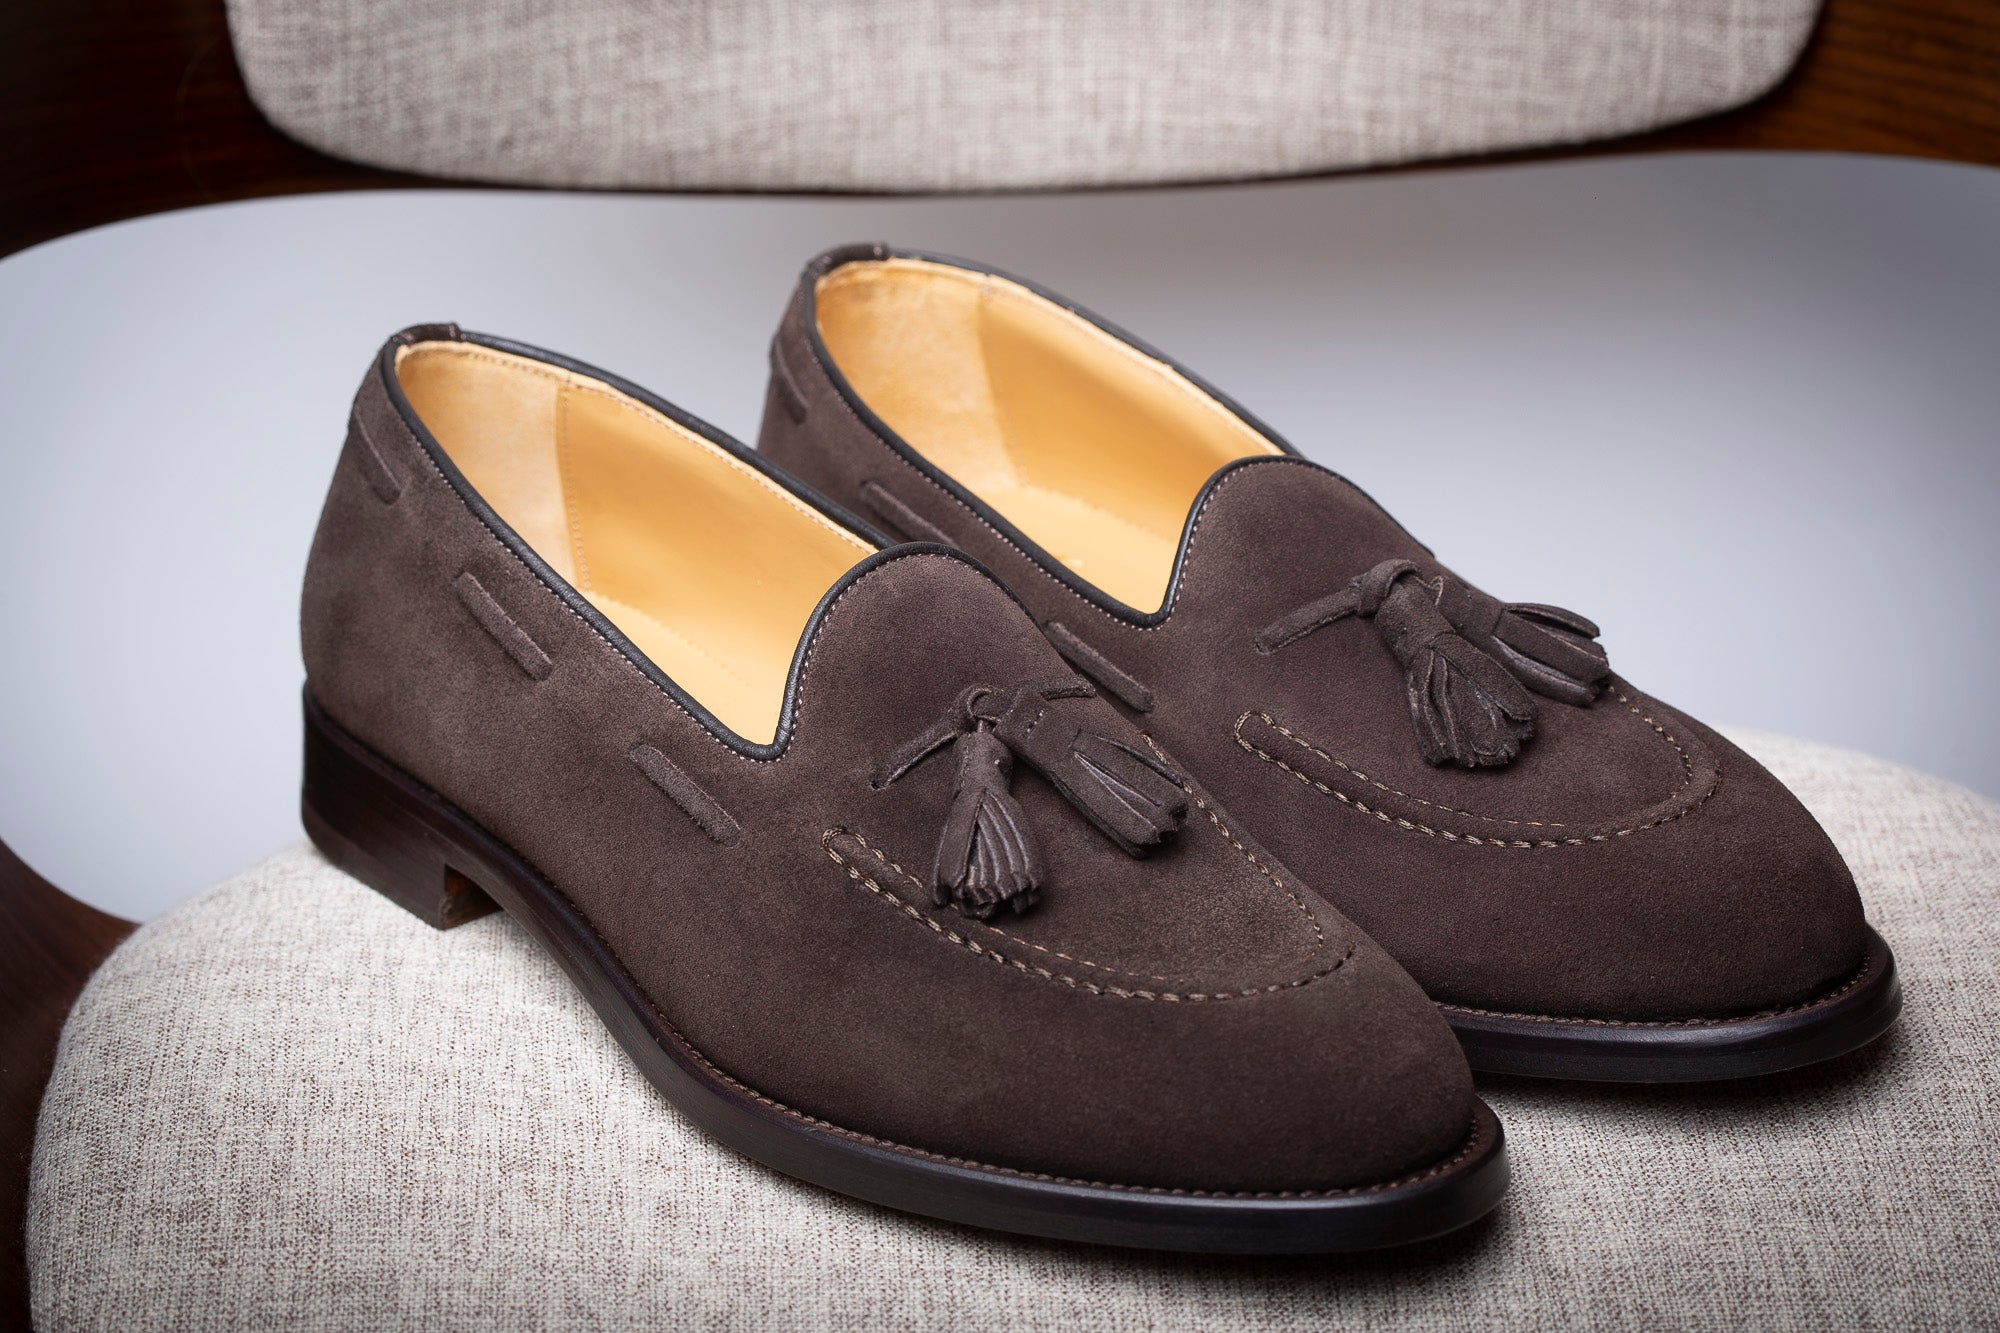 BROWN SUEDE TASSEL LOAFER - Made In Italy